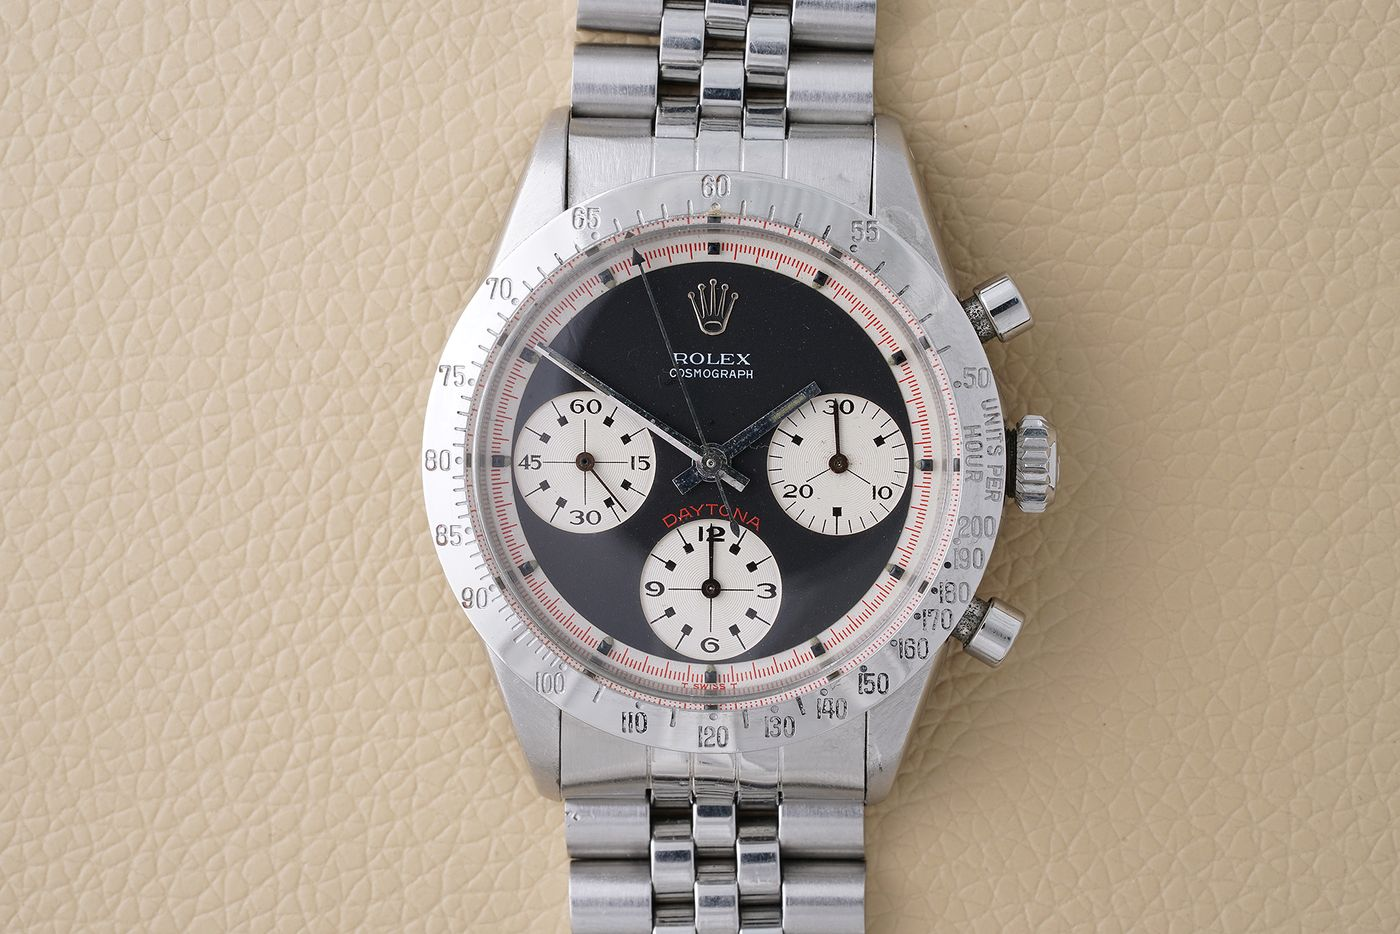 Shortly after taking the checkered flag at the 1969 edition of the Daytona 500, LeeRoy Yarbrough received two prizes: the race trophy and a new chronograph from Rolex. Isabella Proia presents the watch, a rare 'Paul Newman' reference 6239 and the earliest known Rolex Daytona awarded to a Daytona 500 winner.